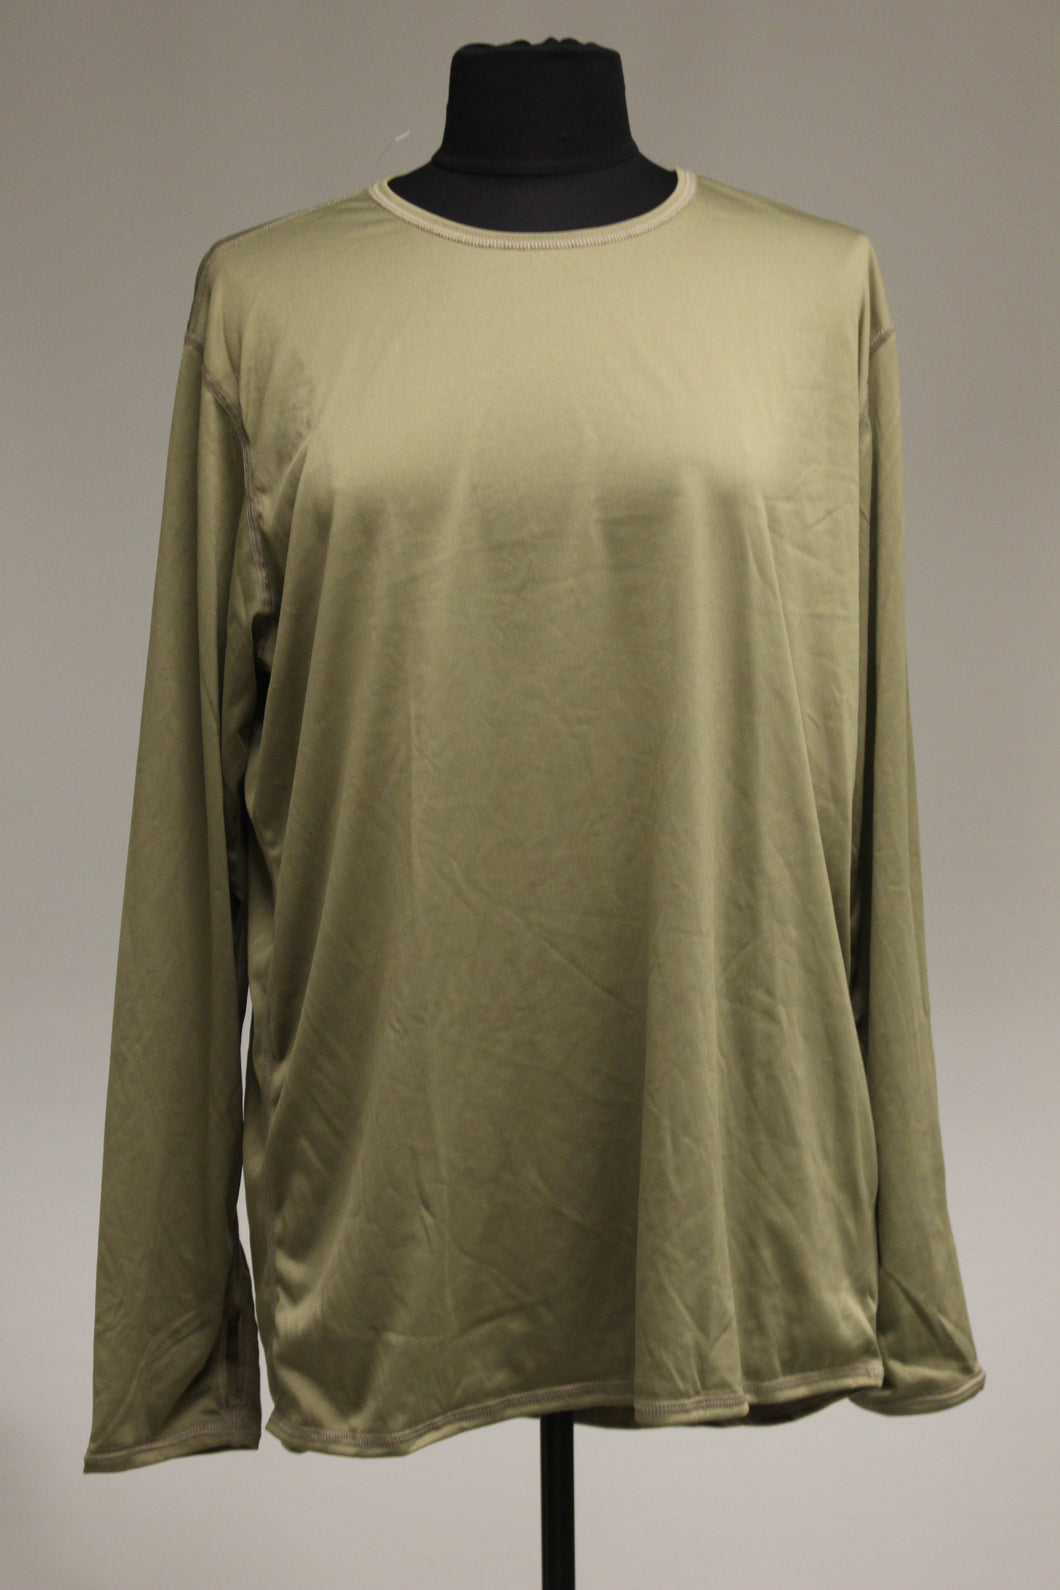 Military Gen III Light Weight Cold Weather Long John Shirt, Large Reg, 8415-01-641-1741